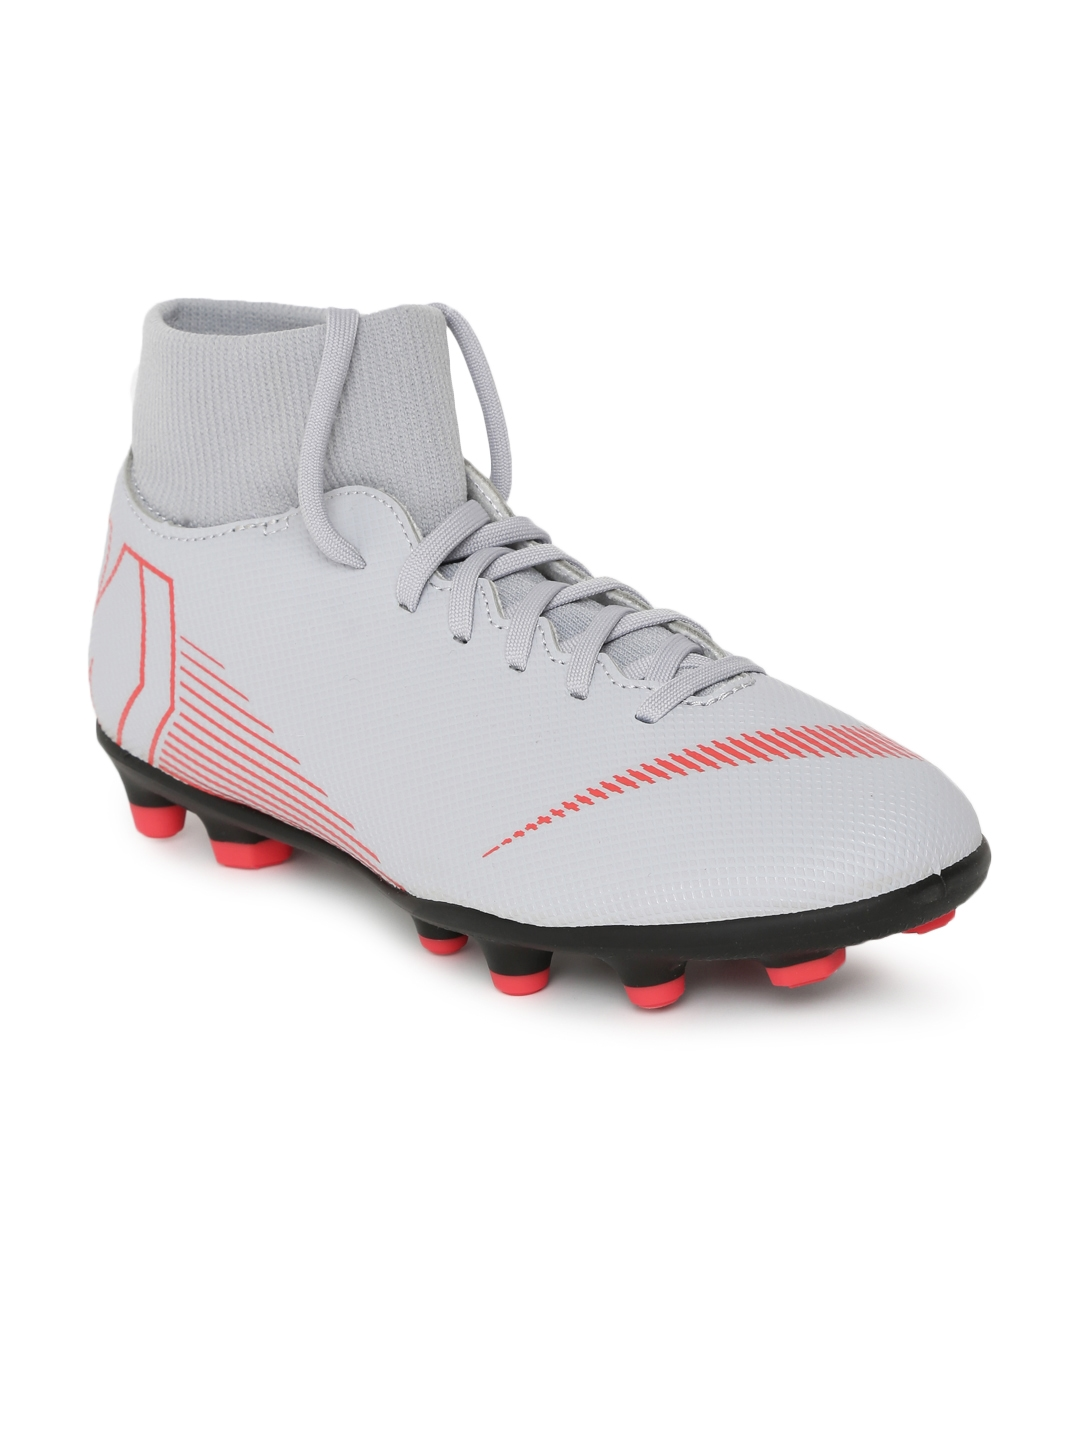 2abb48503 Buy Nike Unisex Grey Superfly 6 Club FG MG Football Shoes - Sports ...